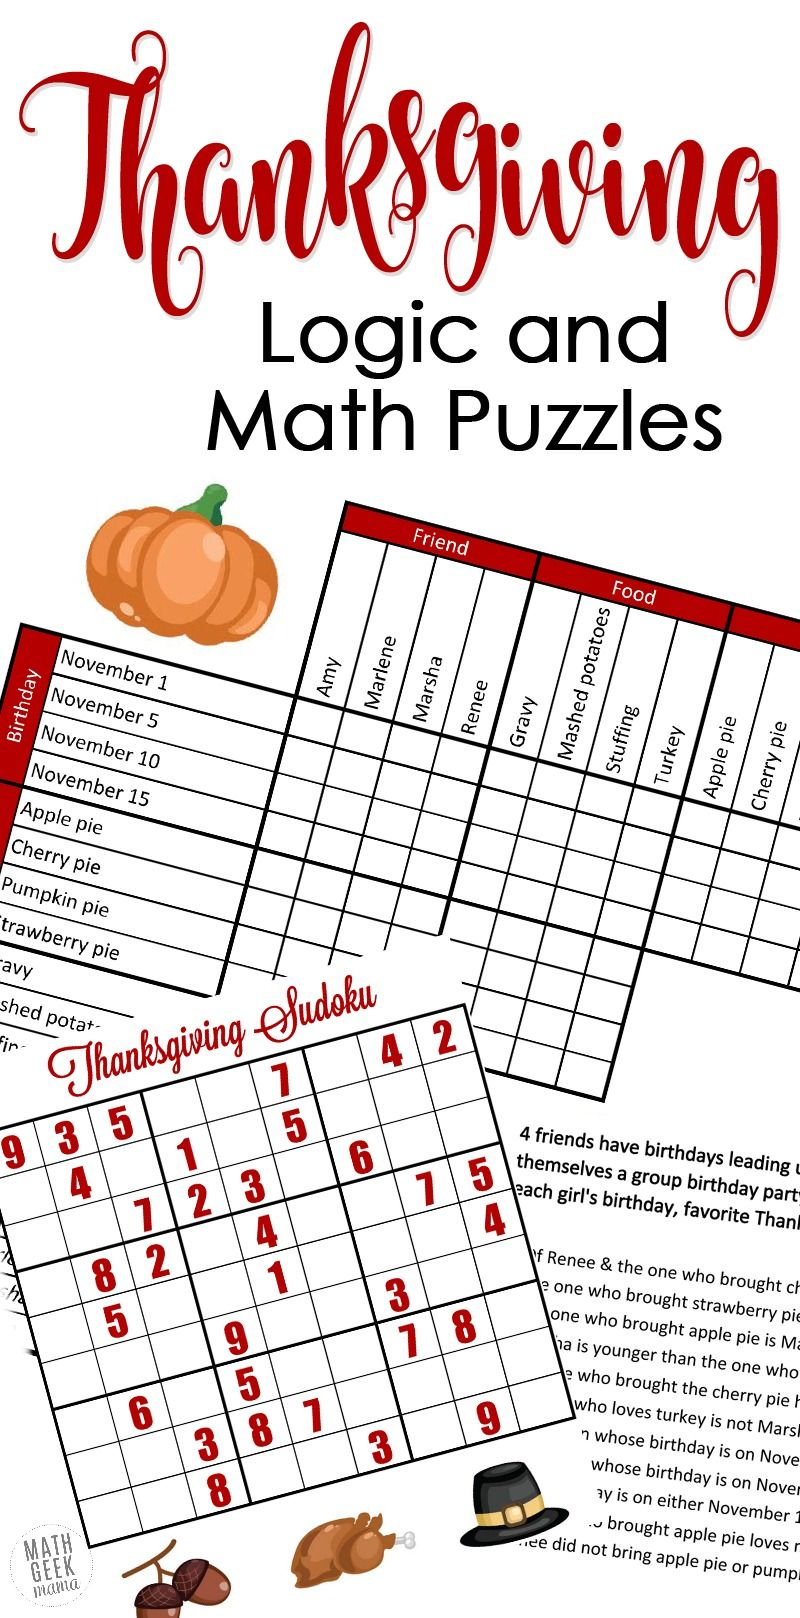 Free Fun Thanksgiving Math Puzzles For Older Kids Thanksgiving Math Worksheets Math Logic Puzzles Maths Puzzles